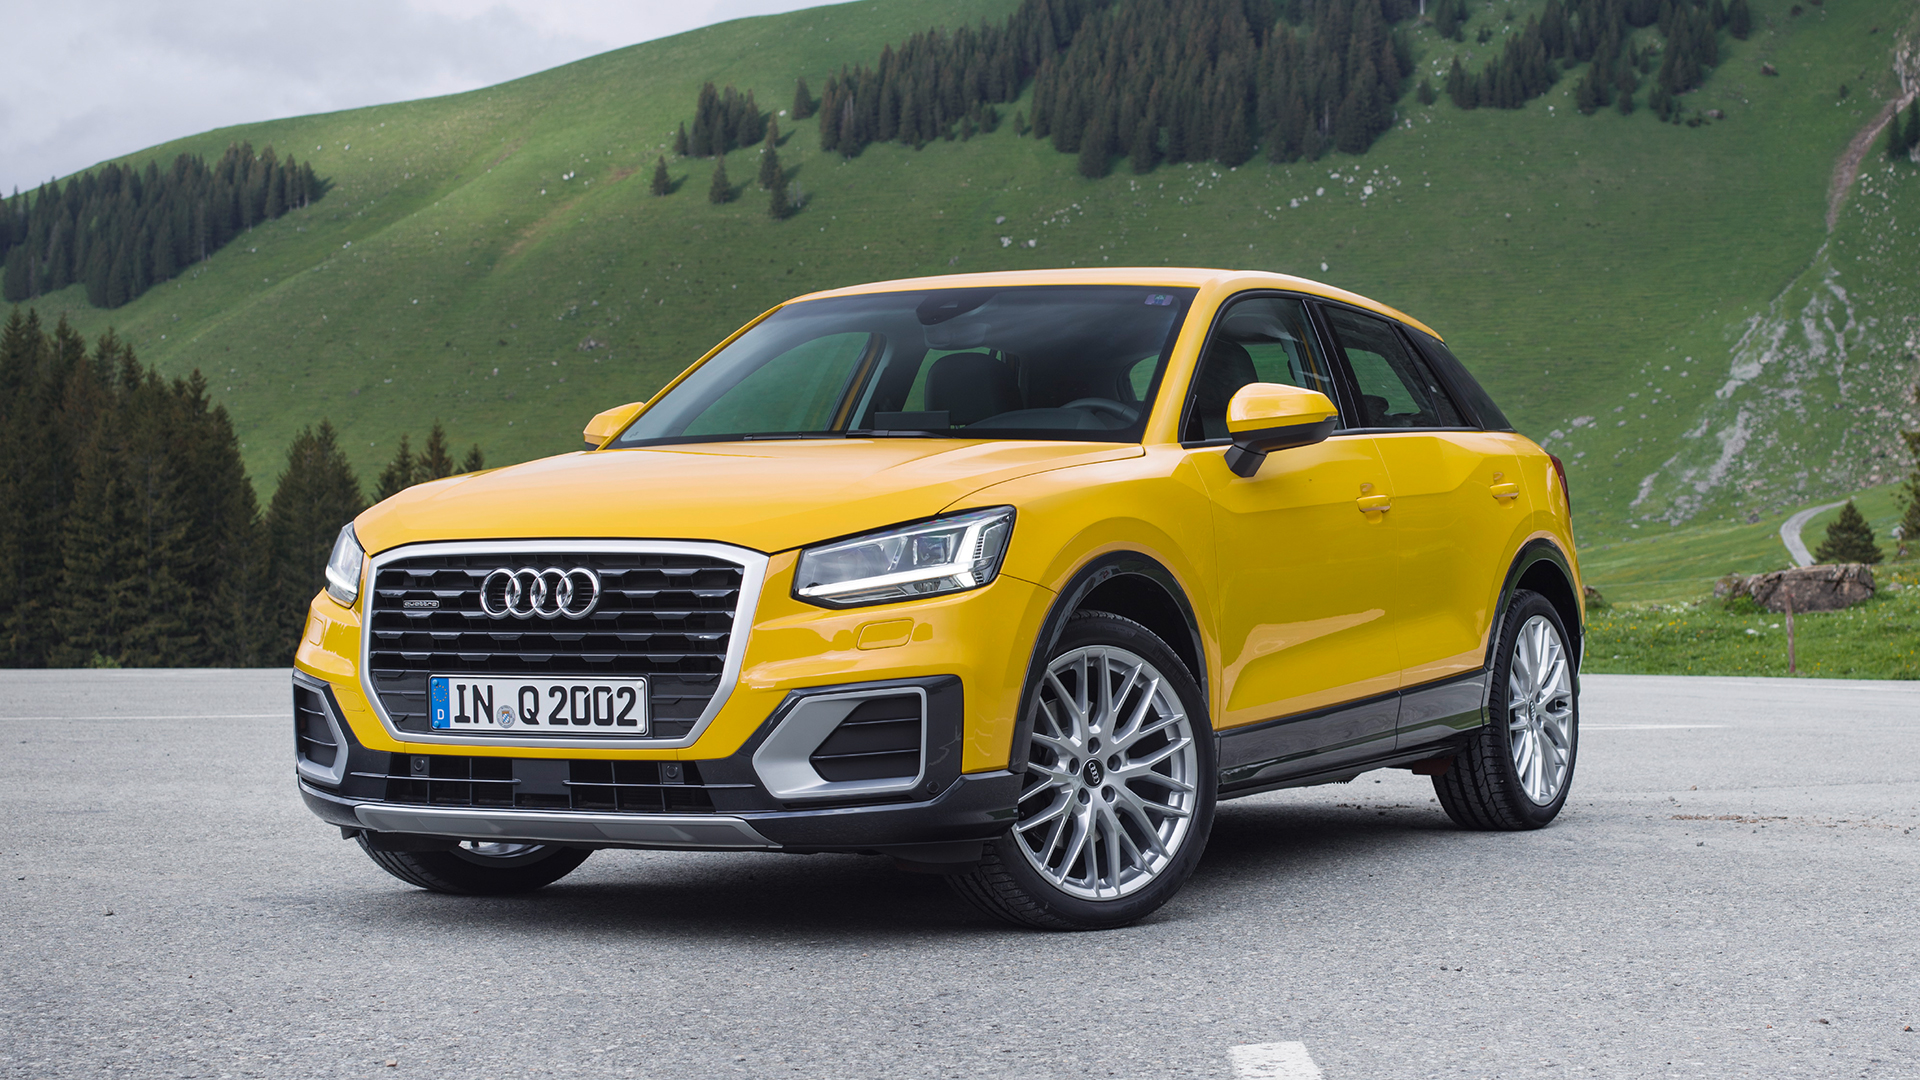 Audi Q2 2017 - Price, Mileage, Reviews, Specification ...